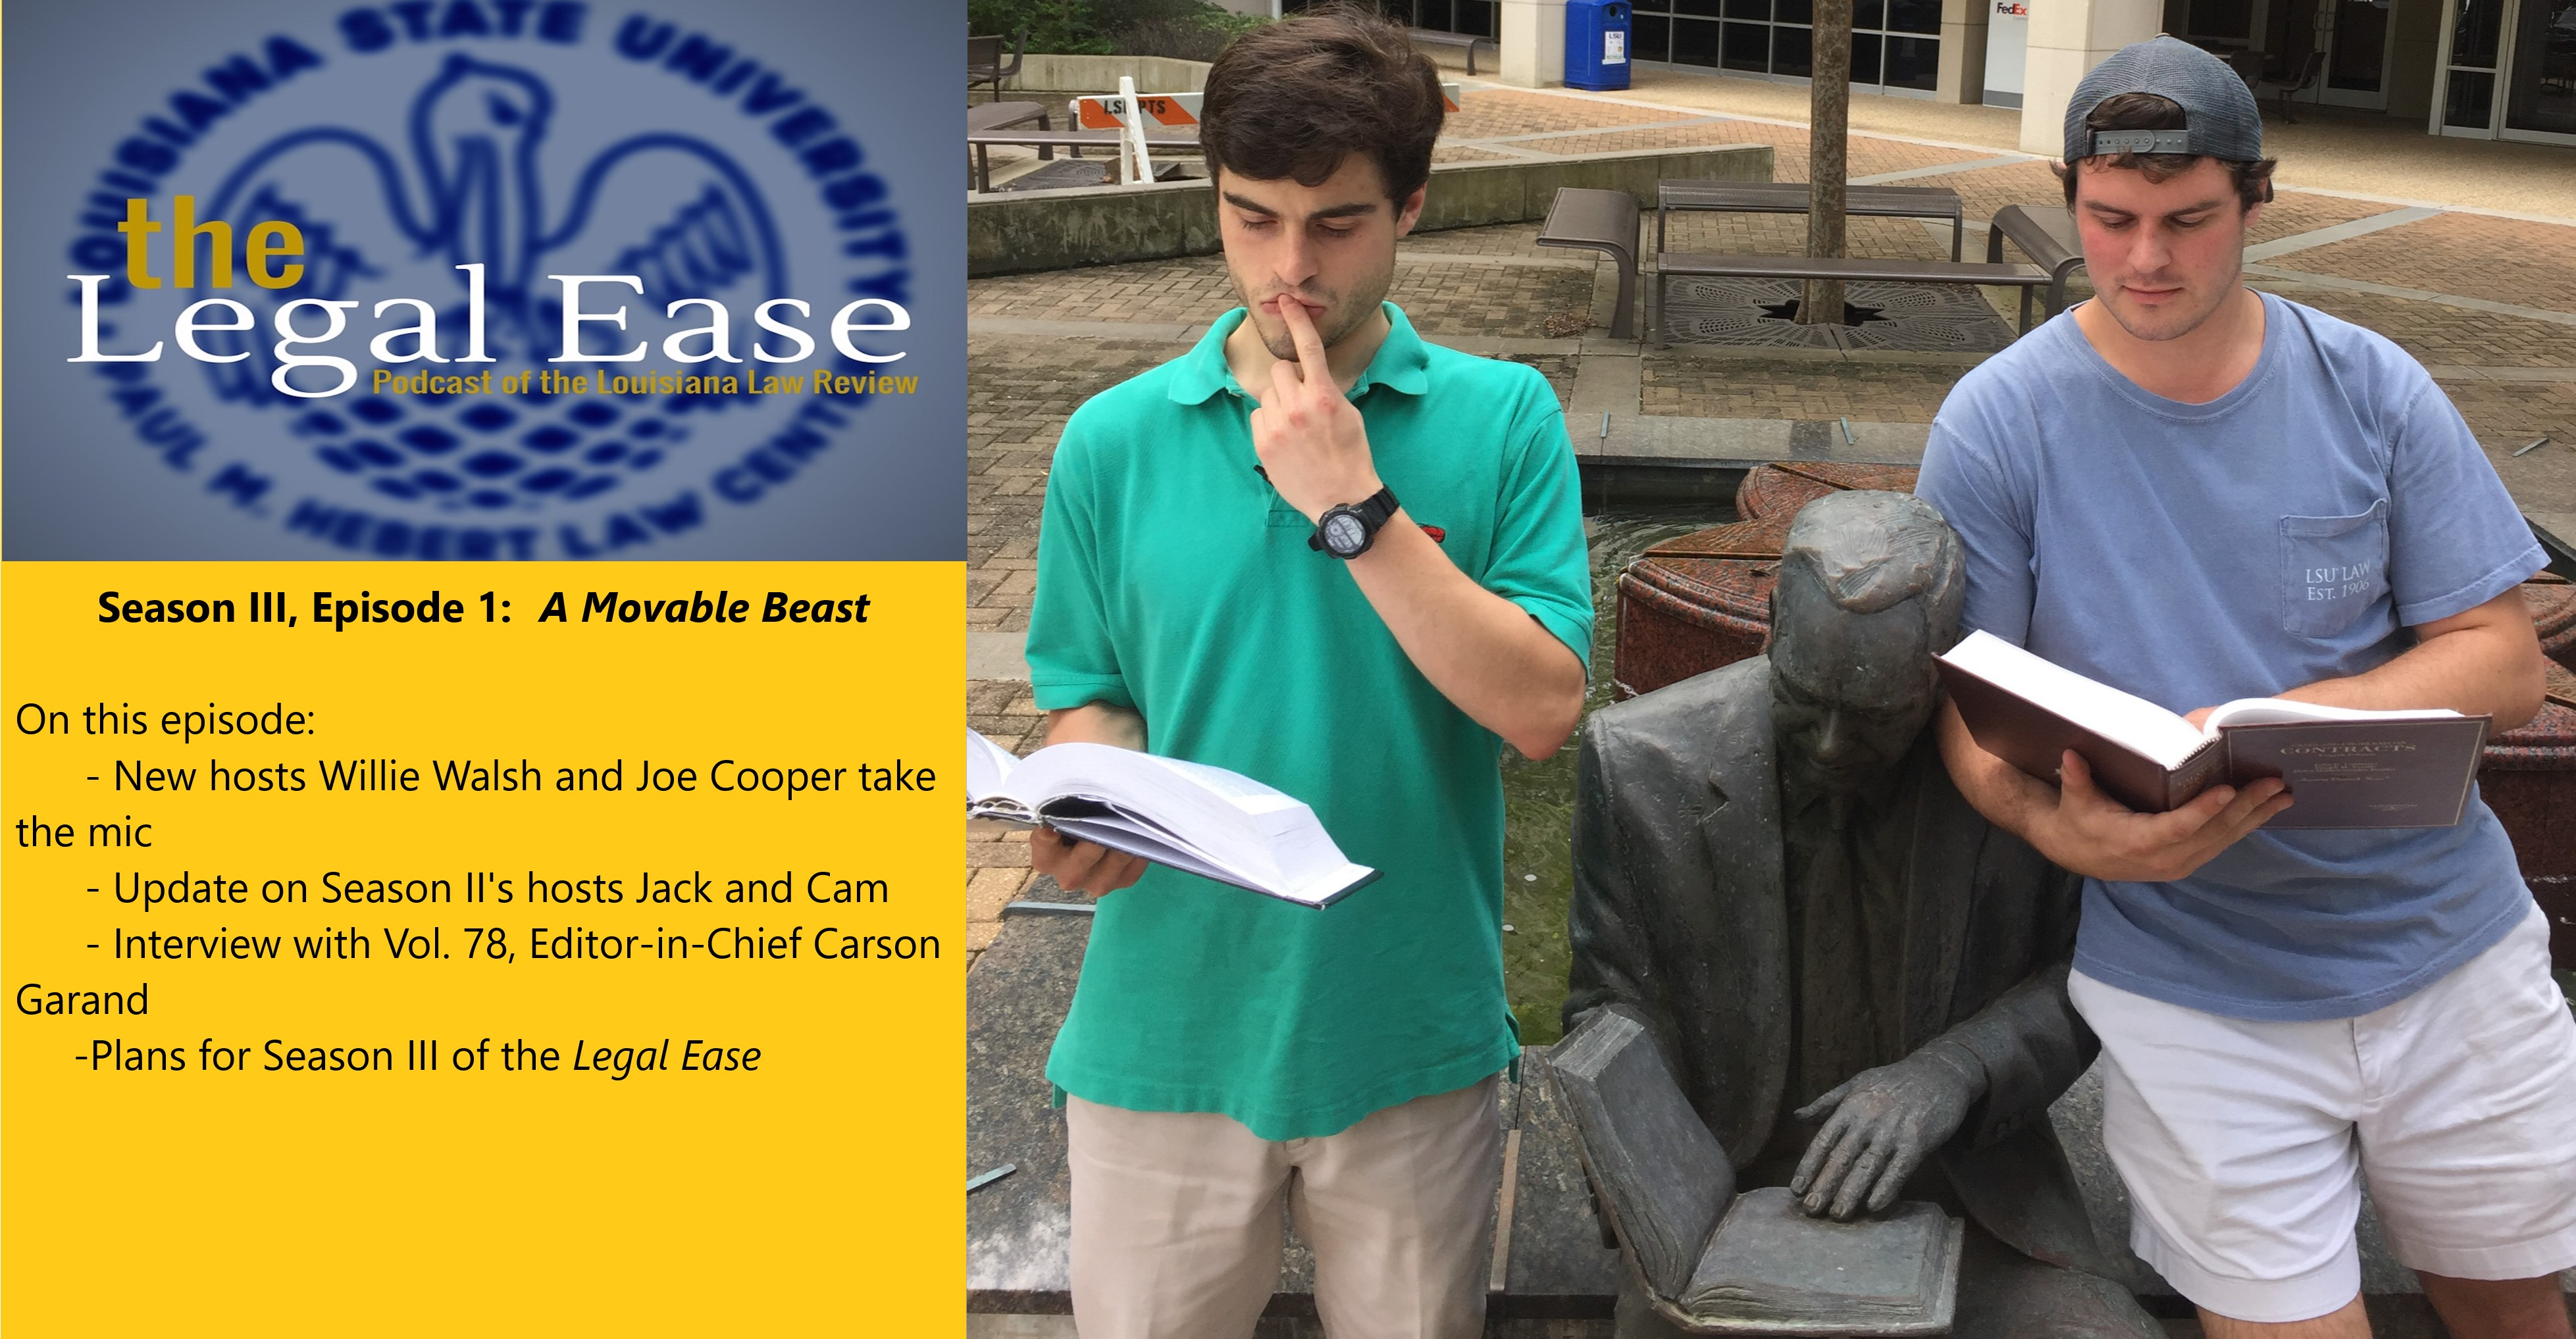 Season III of the Legal Ease Has Arrived!